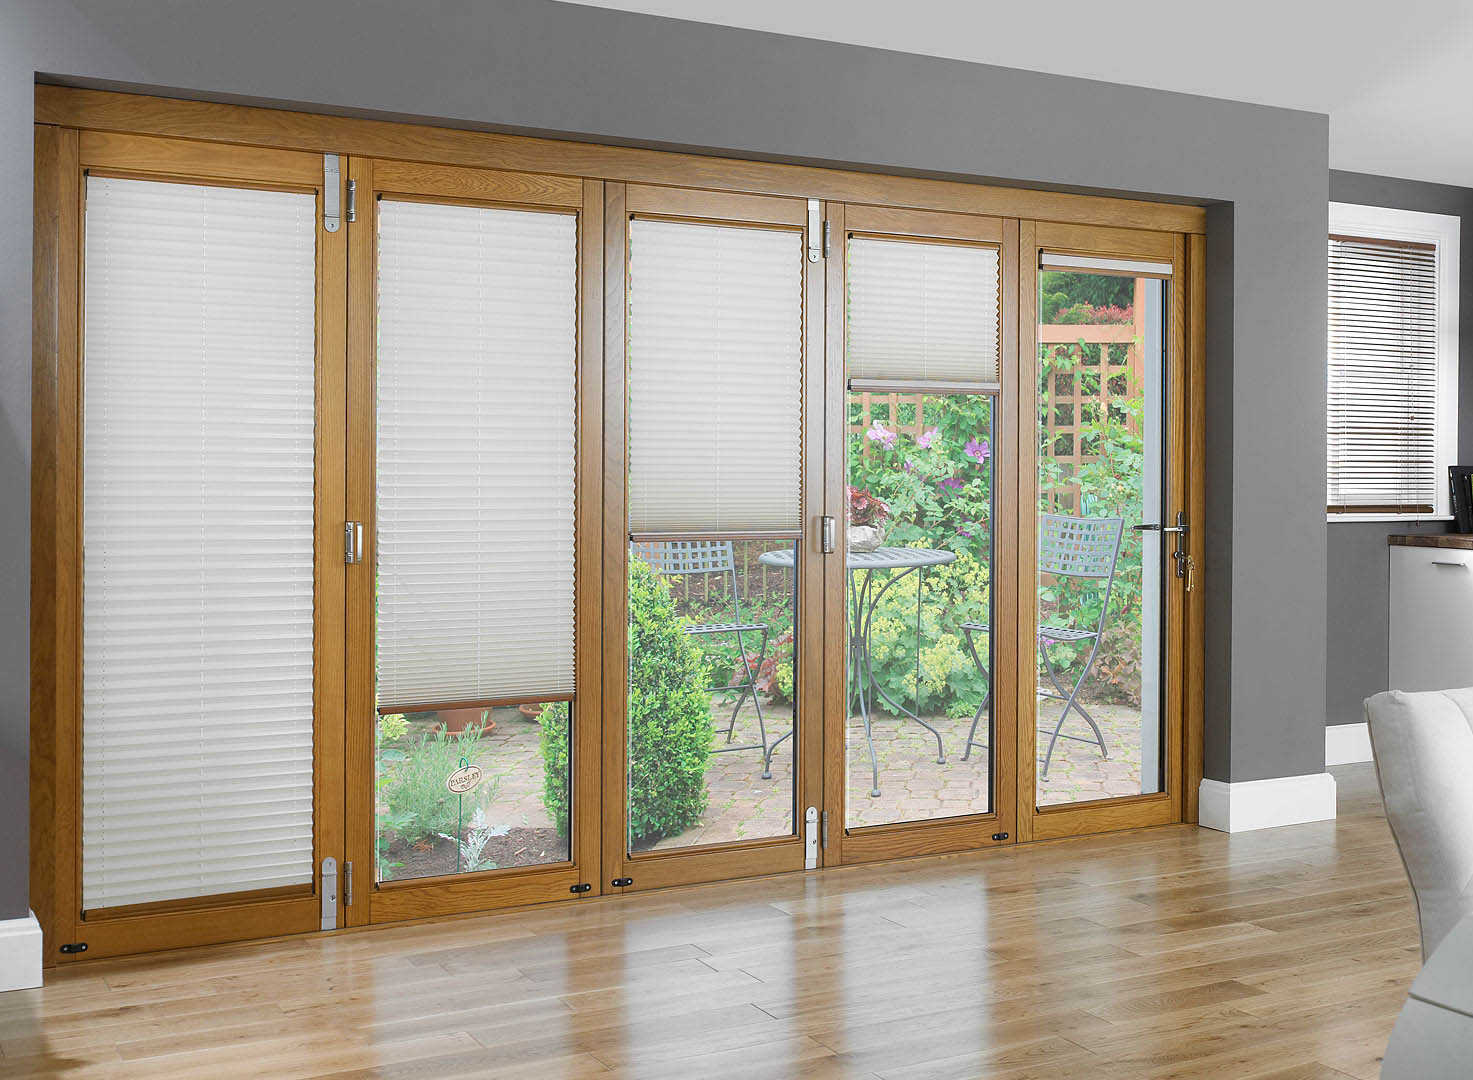 : window treatments for sliding glass doors in living room